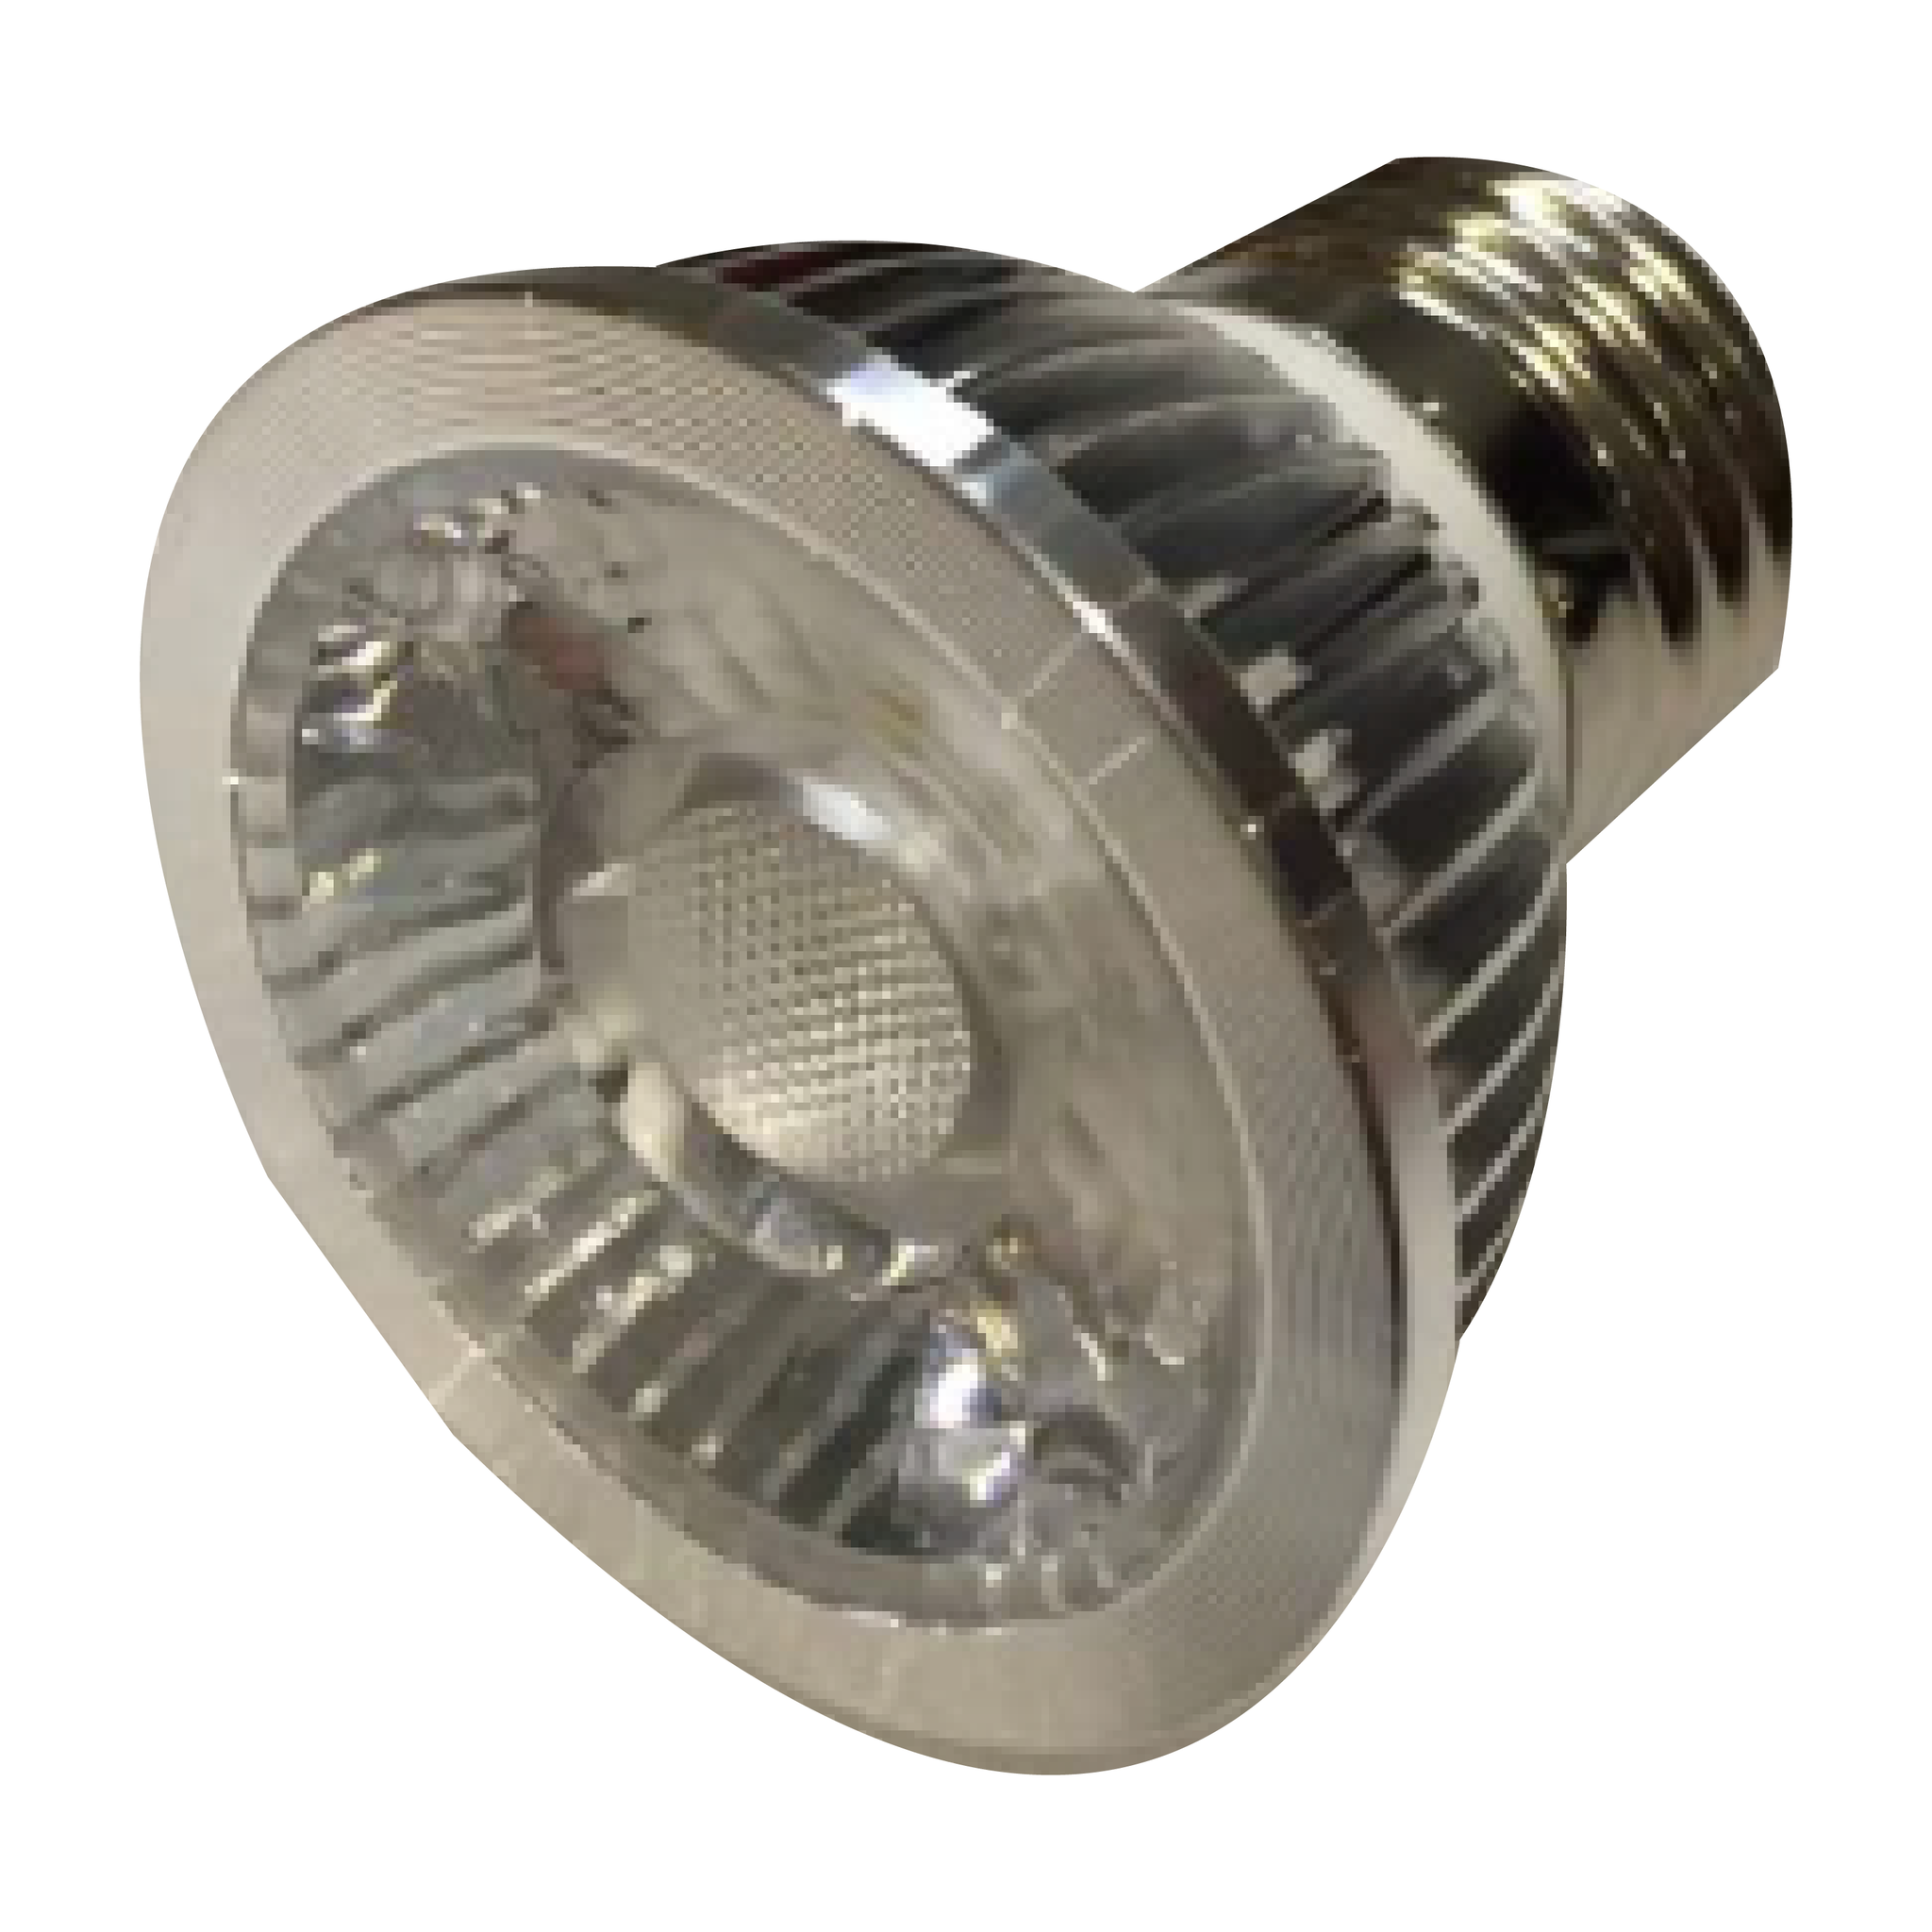 PAR 16 LED Lightbulb